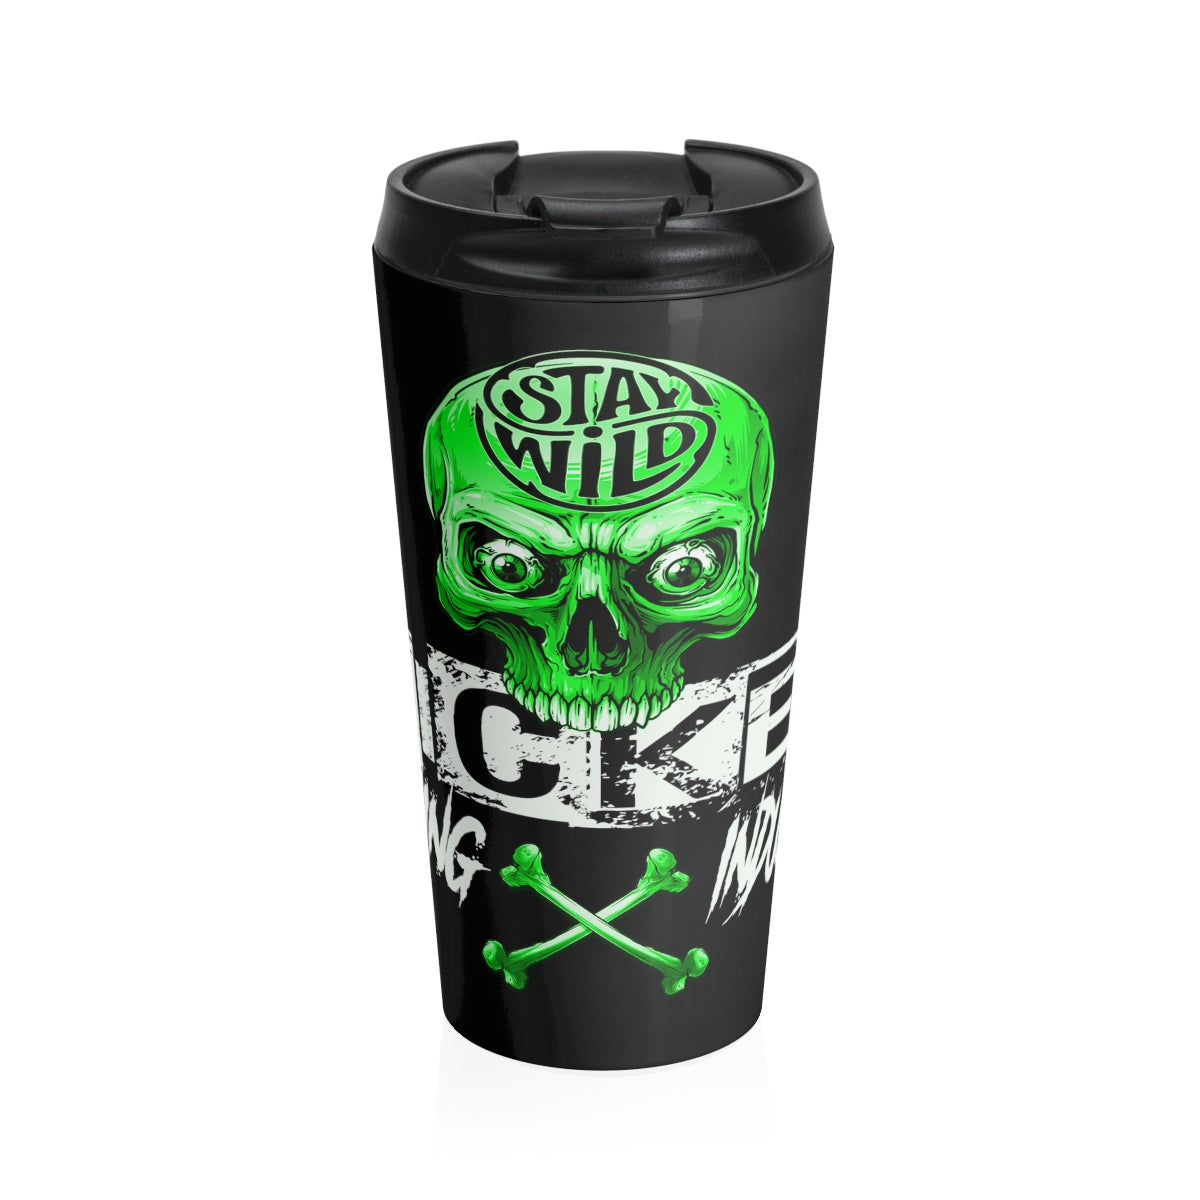 Stay Wild 2/Black/Neon Green/Stainless Steel Travel Mug